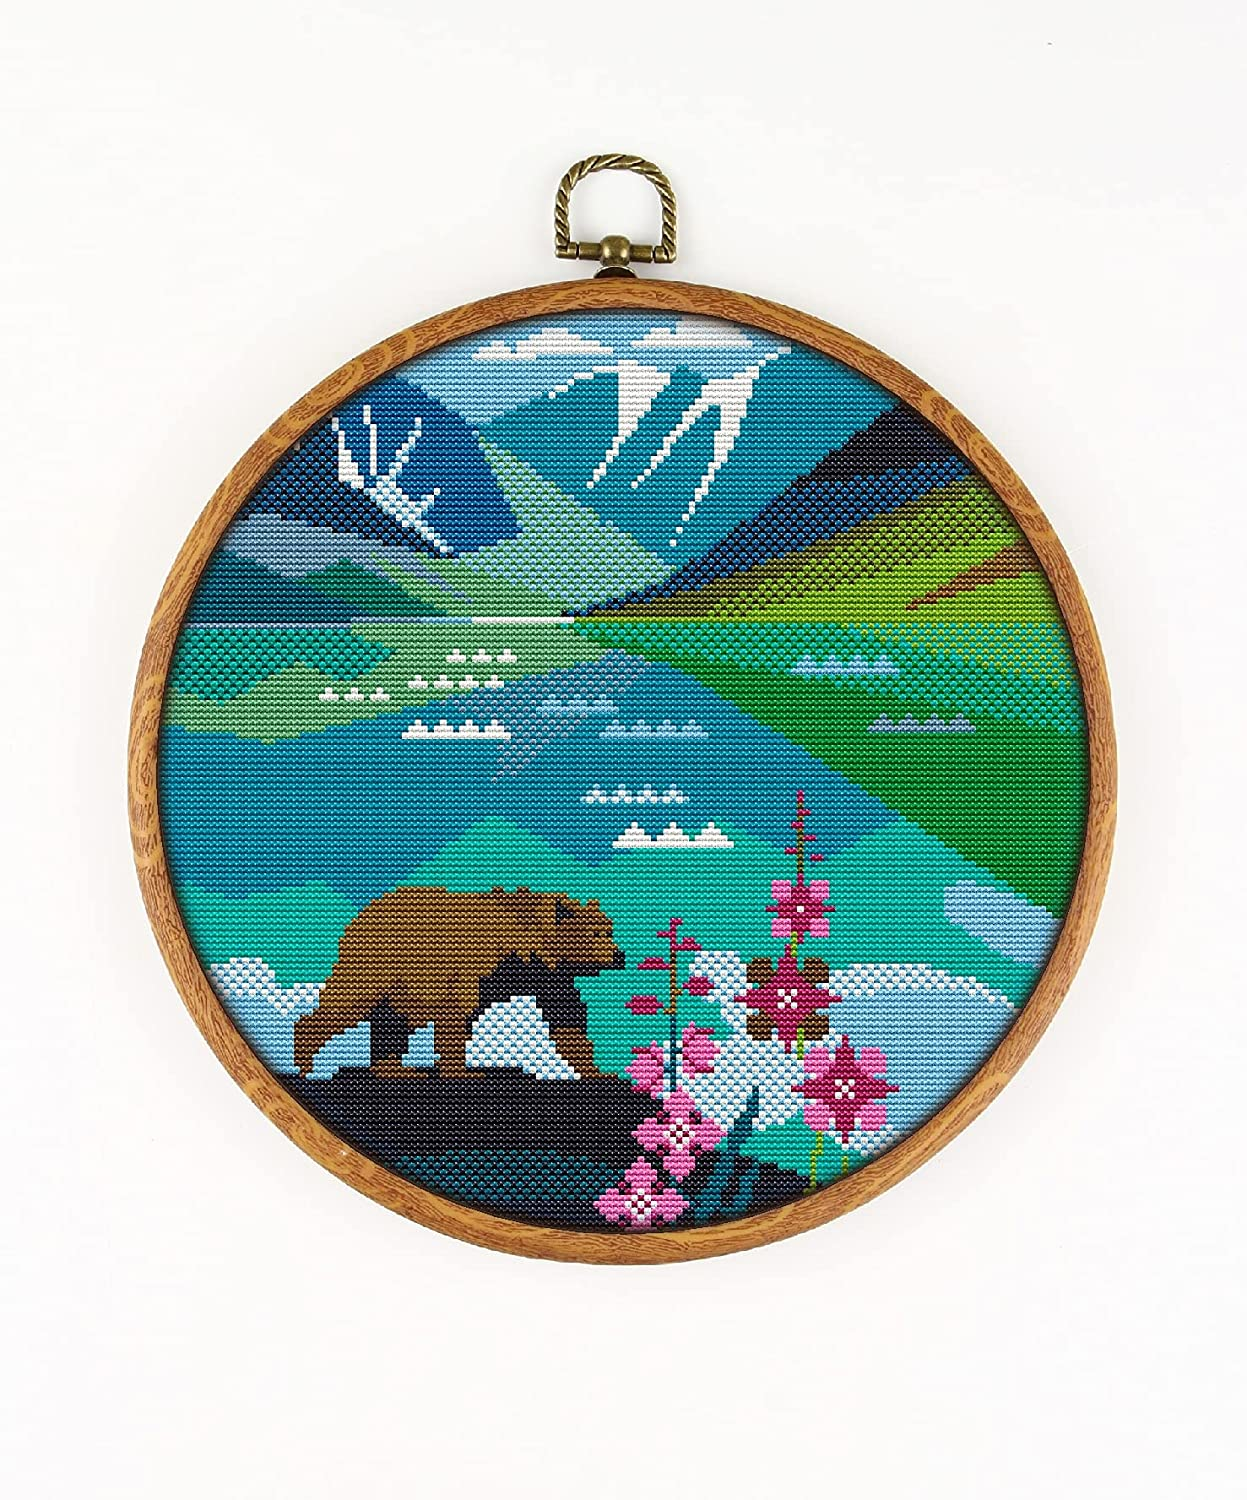 Lake Clark National Park K1147 KIT#3. Stitch Threa Cross Counted Branded goods Selling